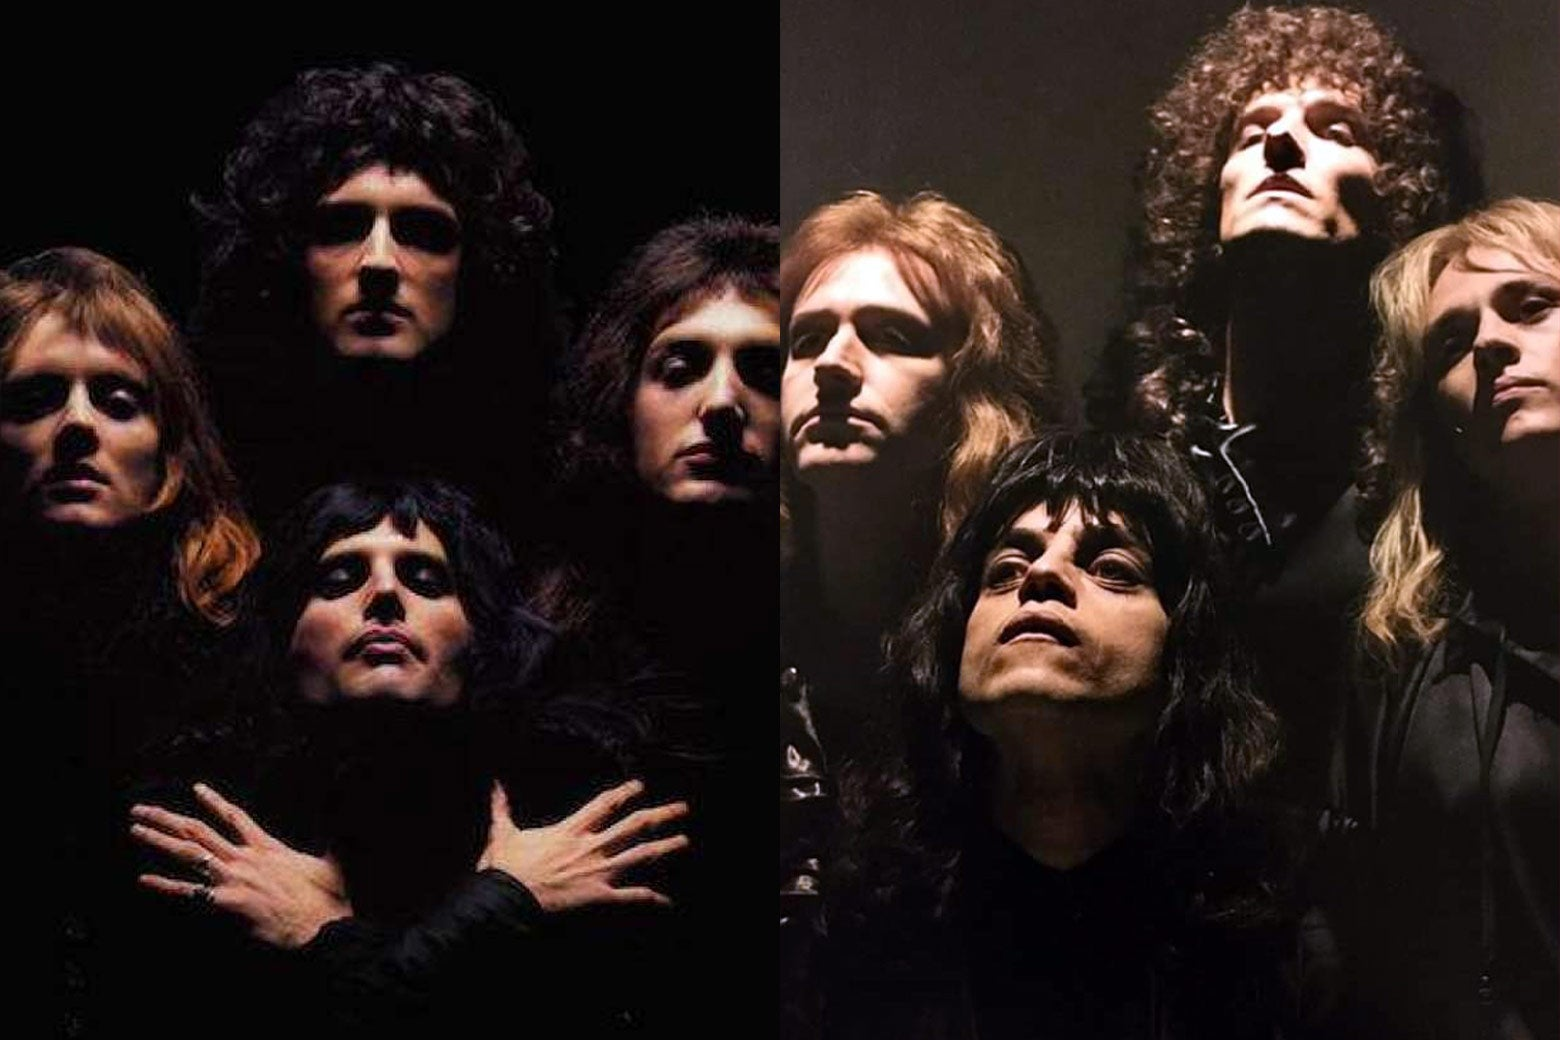 The band in the Bohemian Rhapsody video, in real life and in the movie.